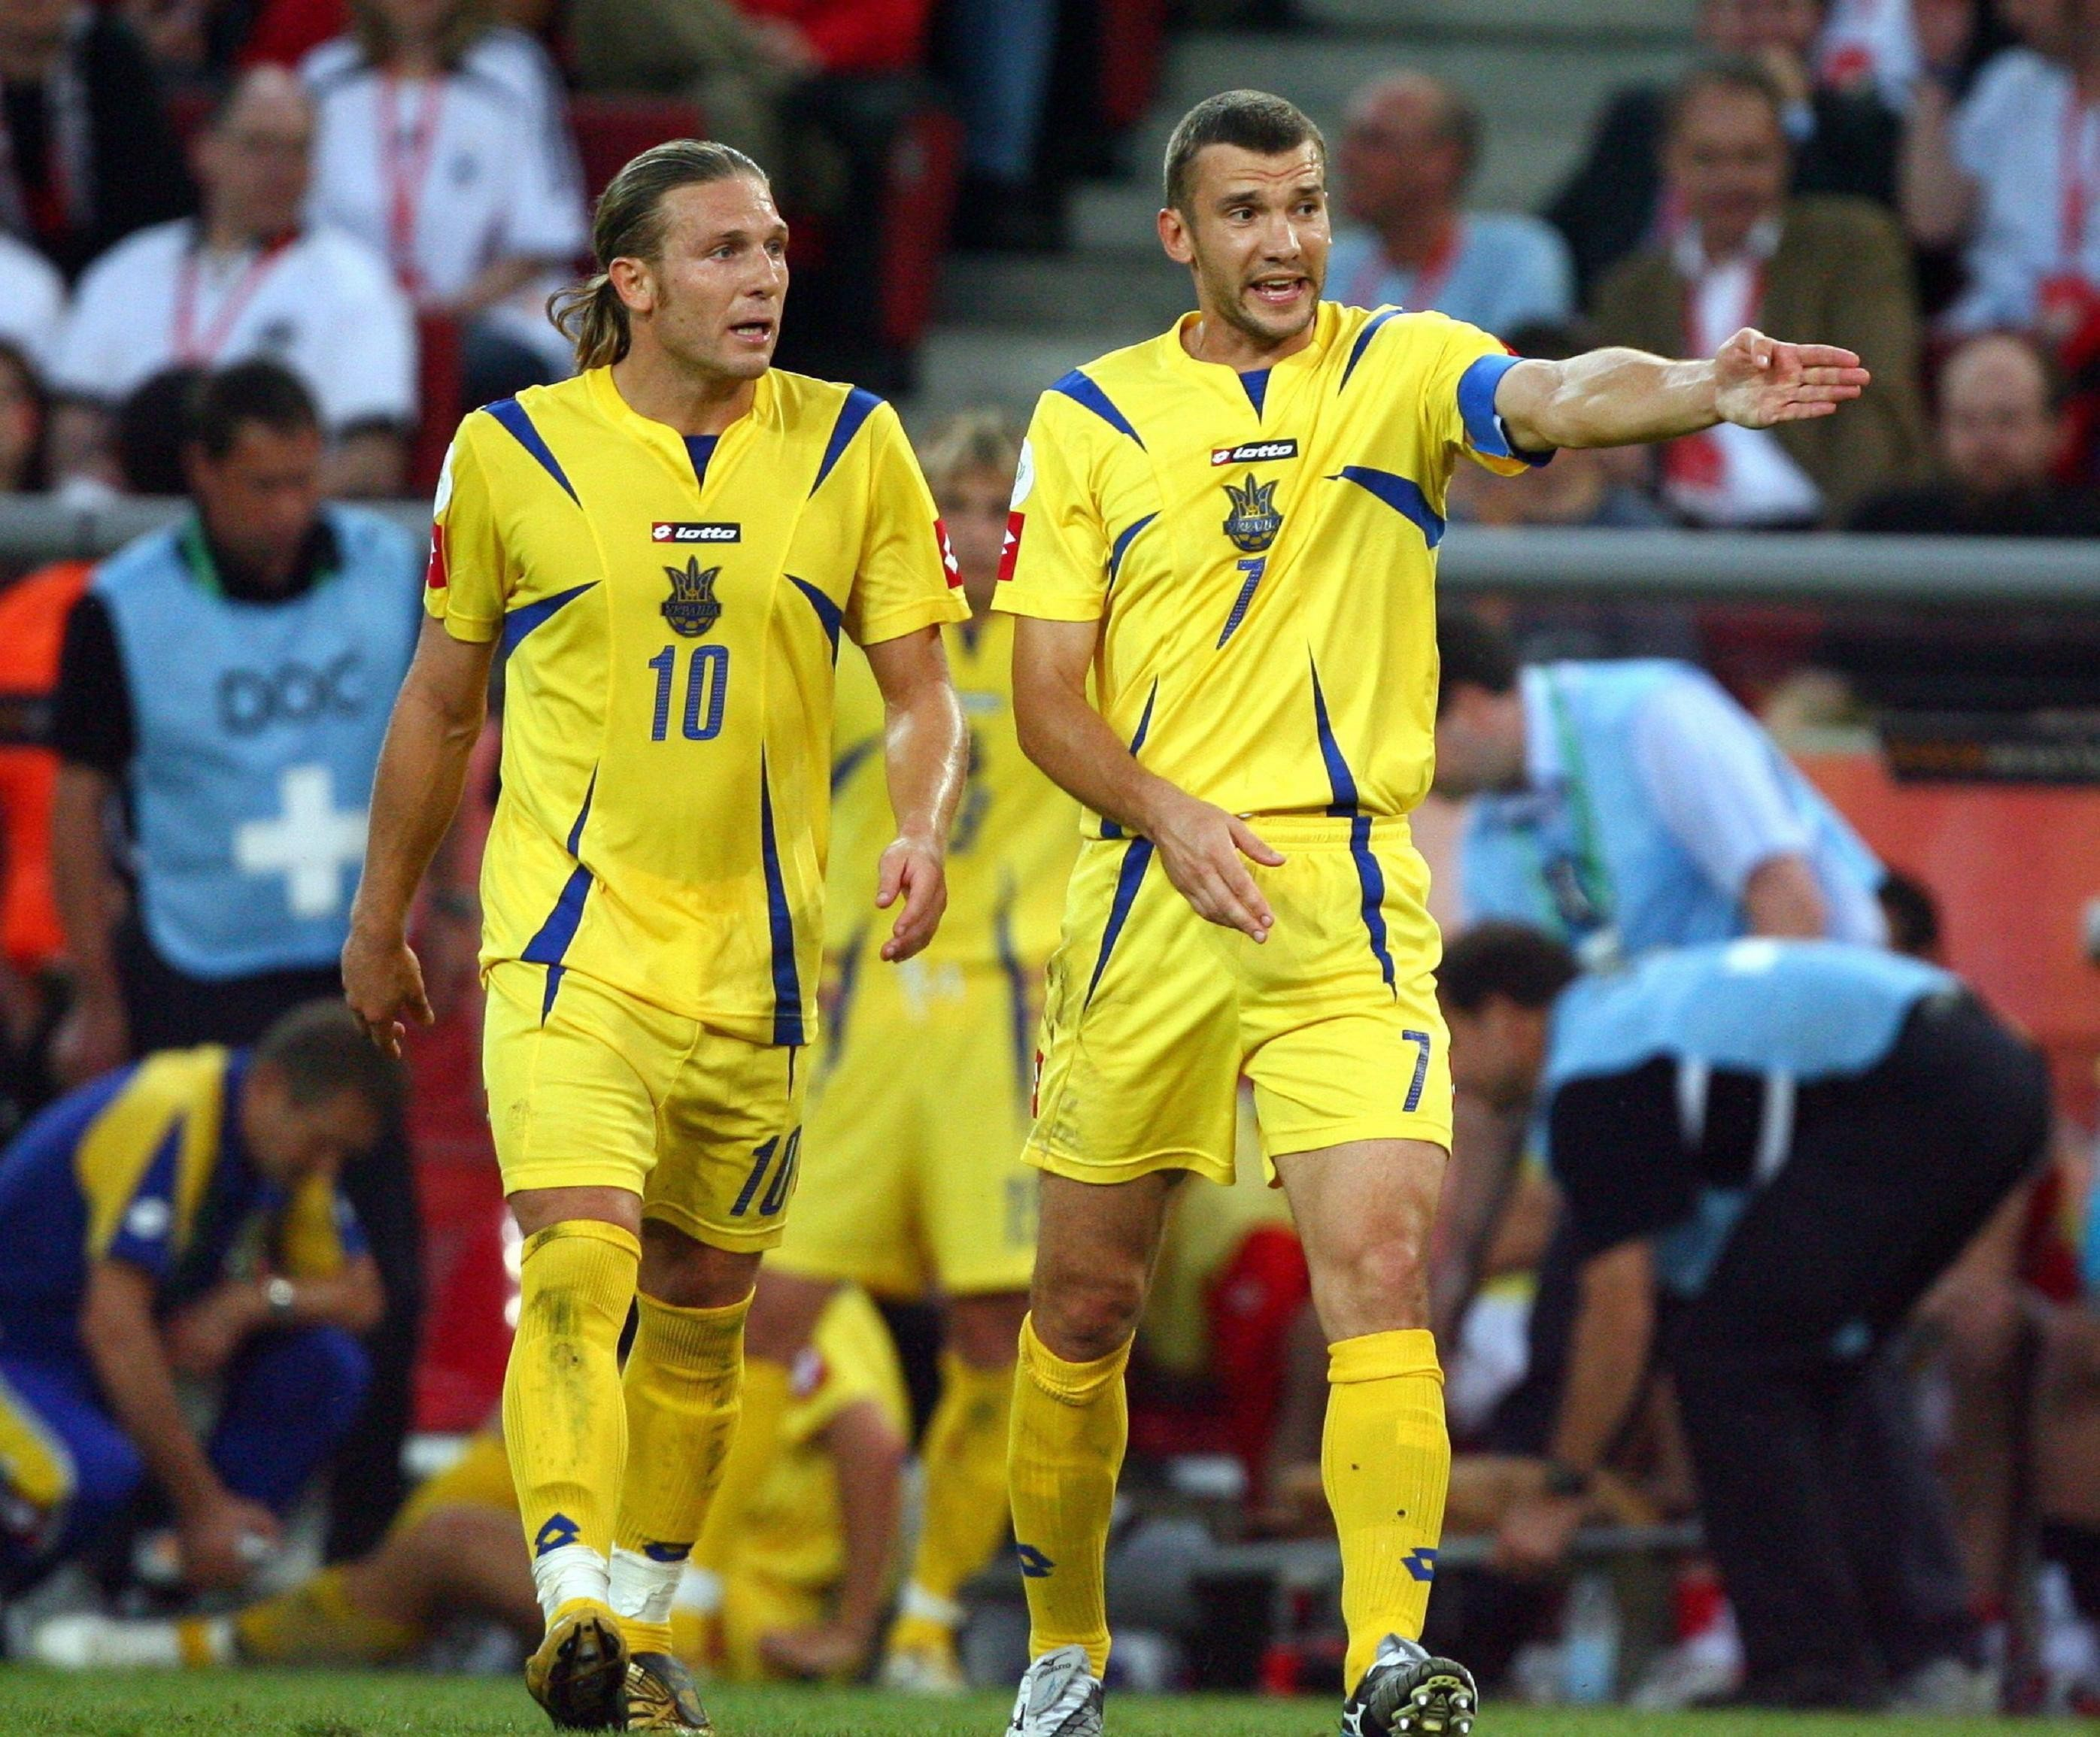 Ukraine World Cup Shevchenko HD Wallpaper